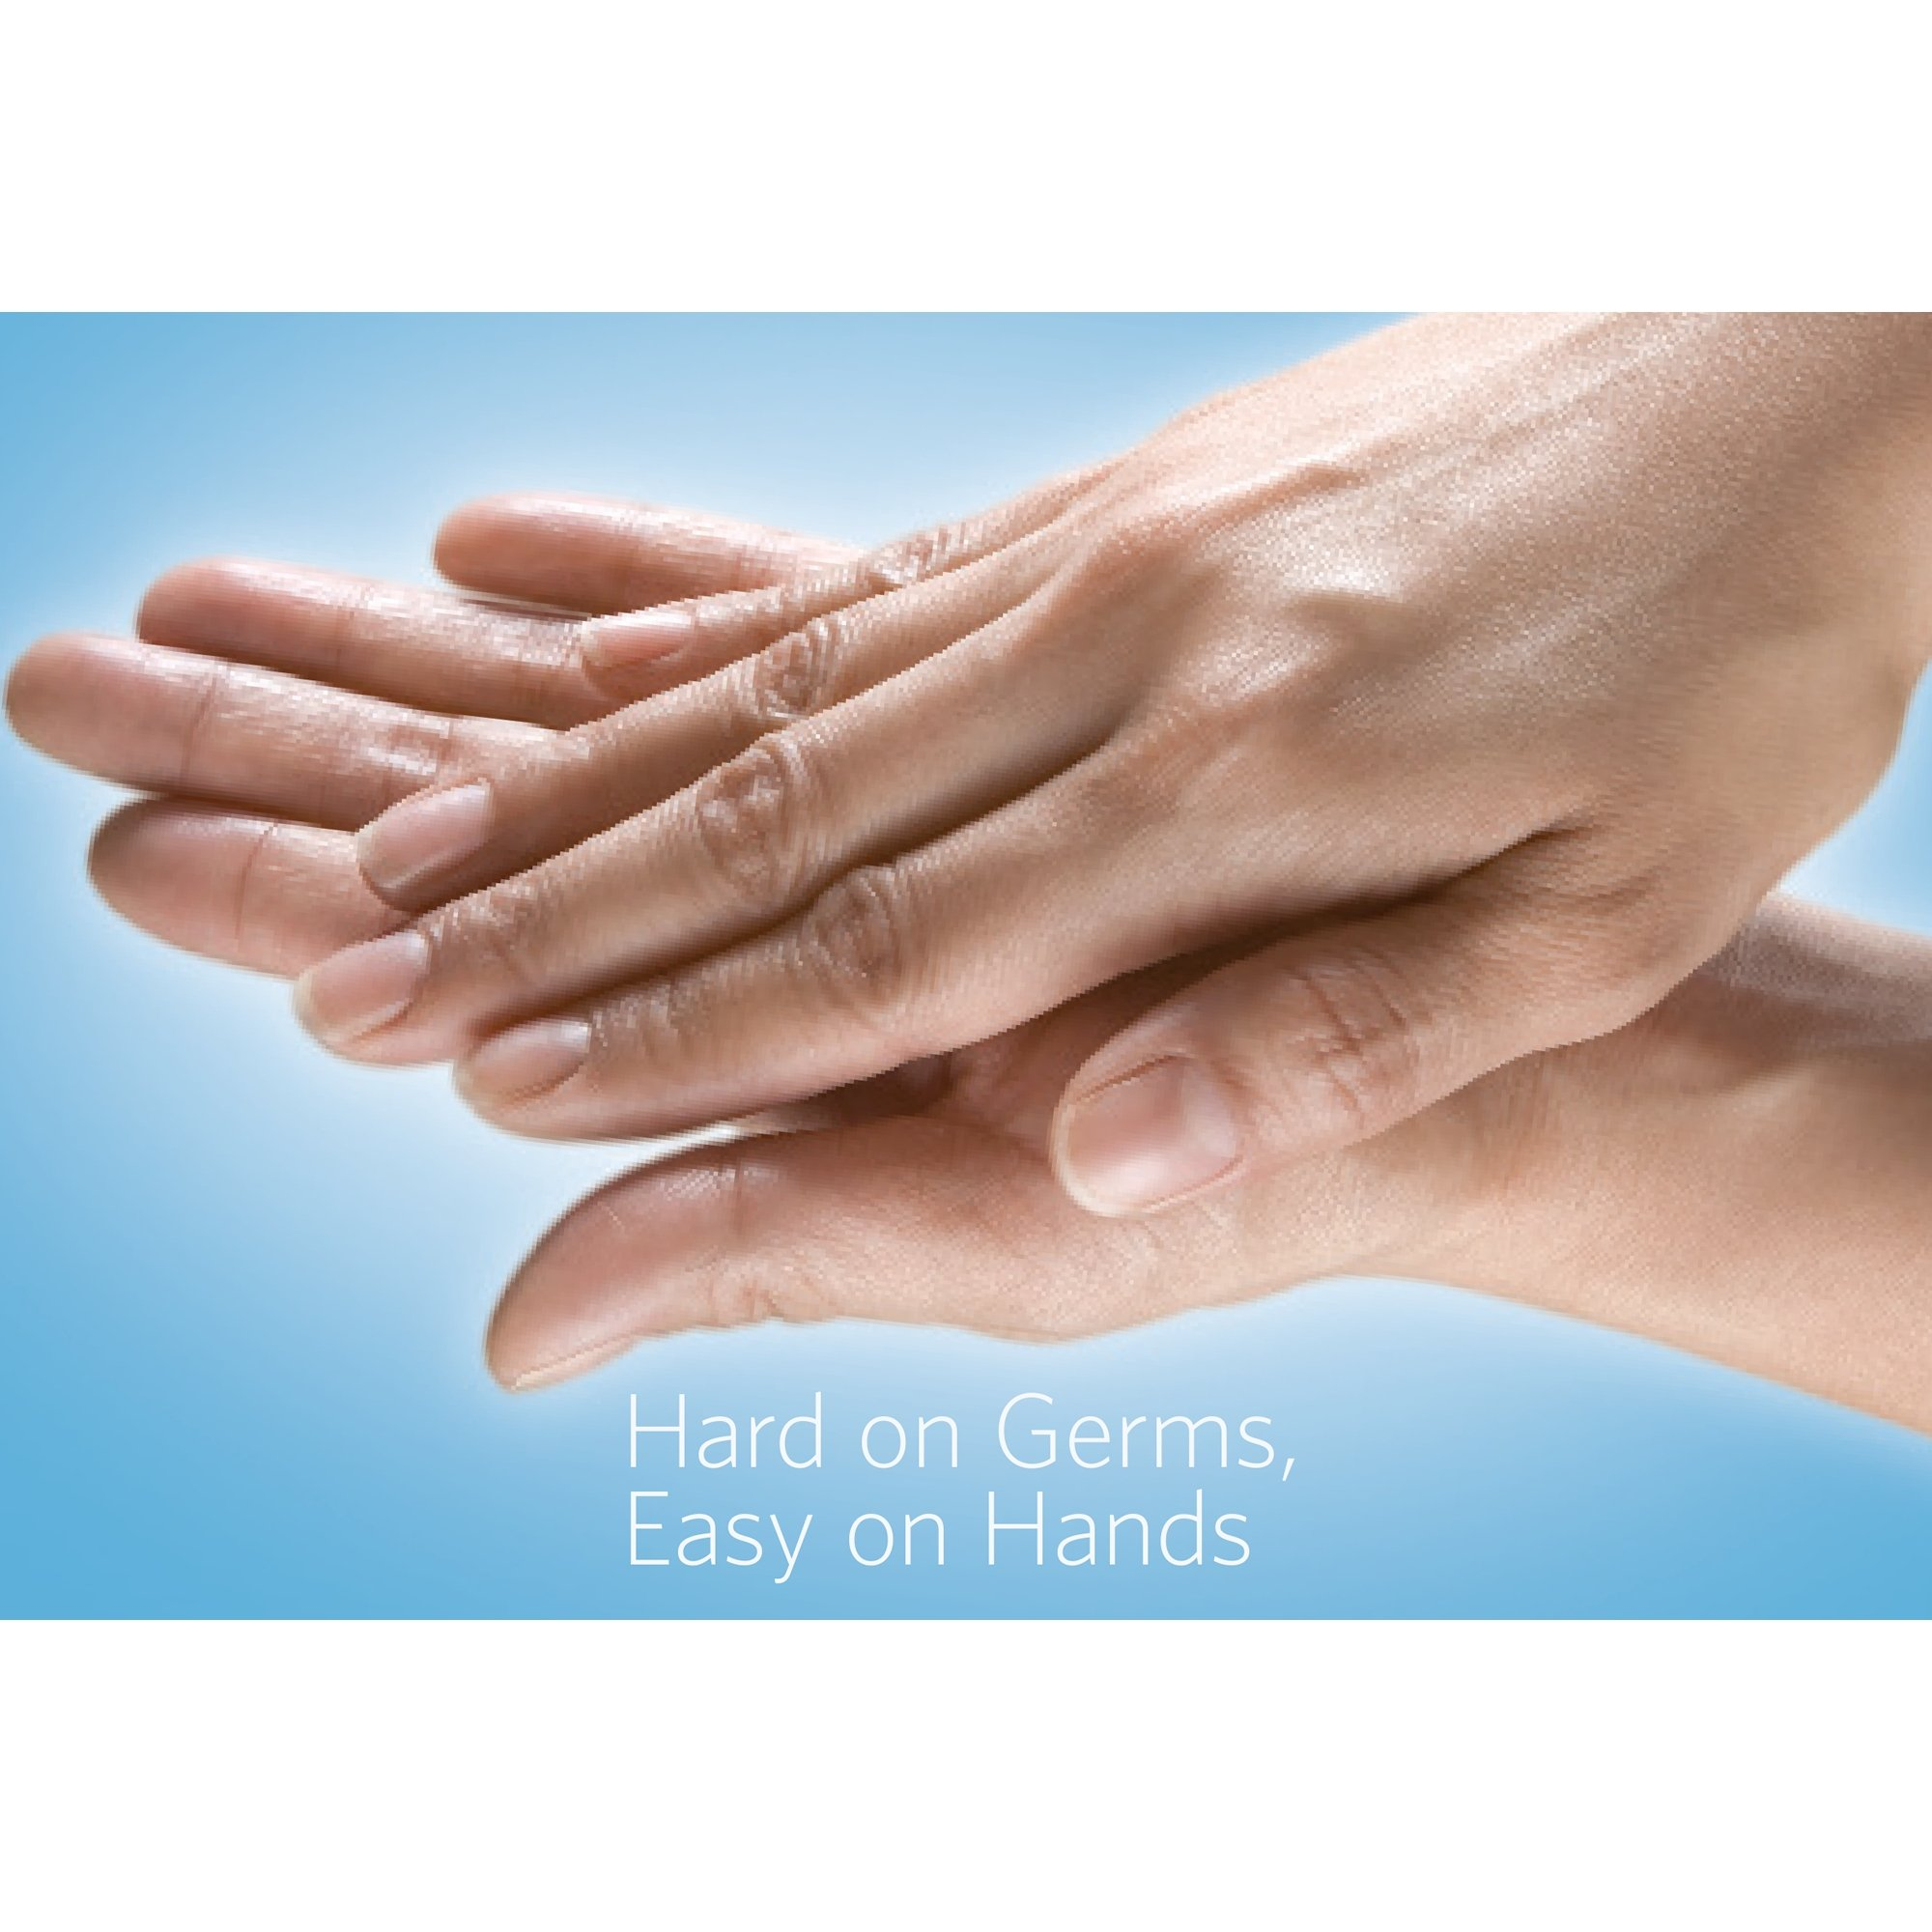 Clorox 30243 Commercial Solutions Touchless Hand Sanitizing Spray Dispenser Refill, 1000 ml by Clorox (Image #2)